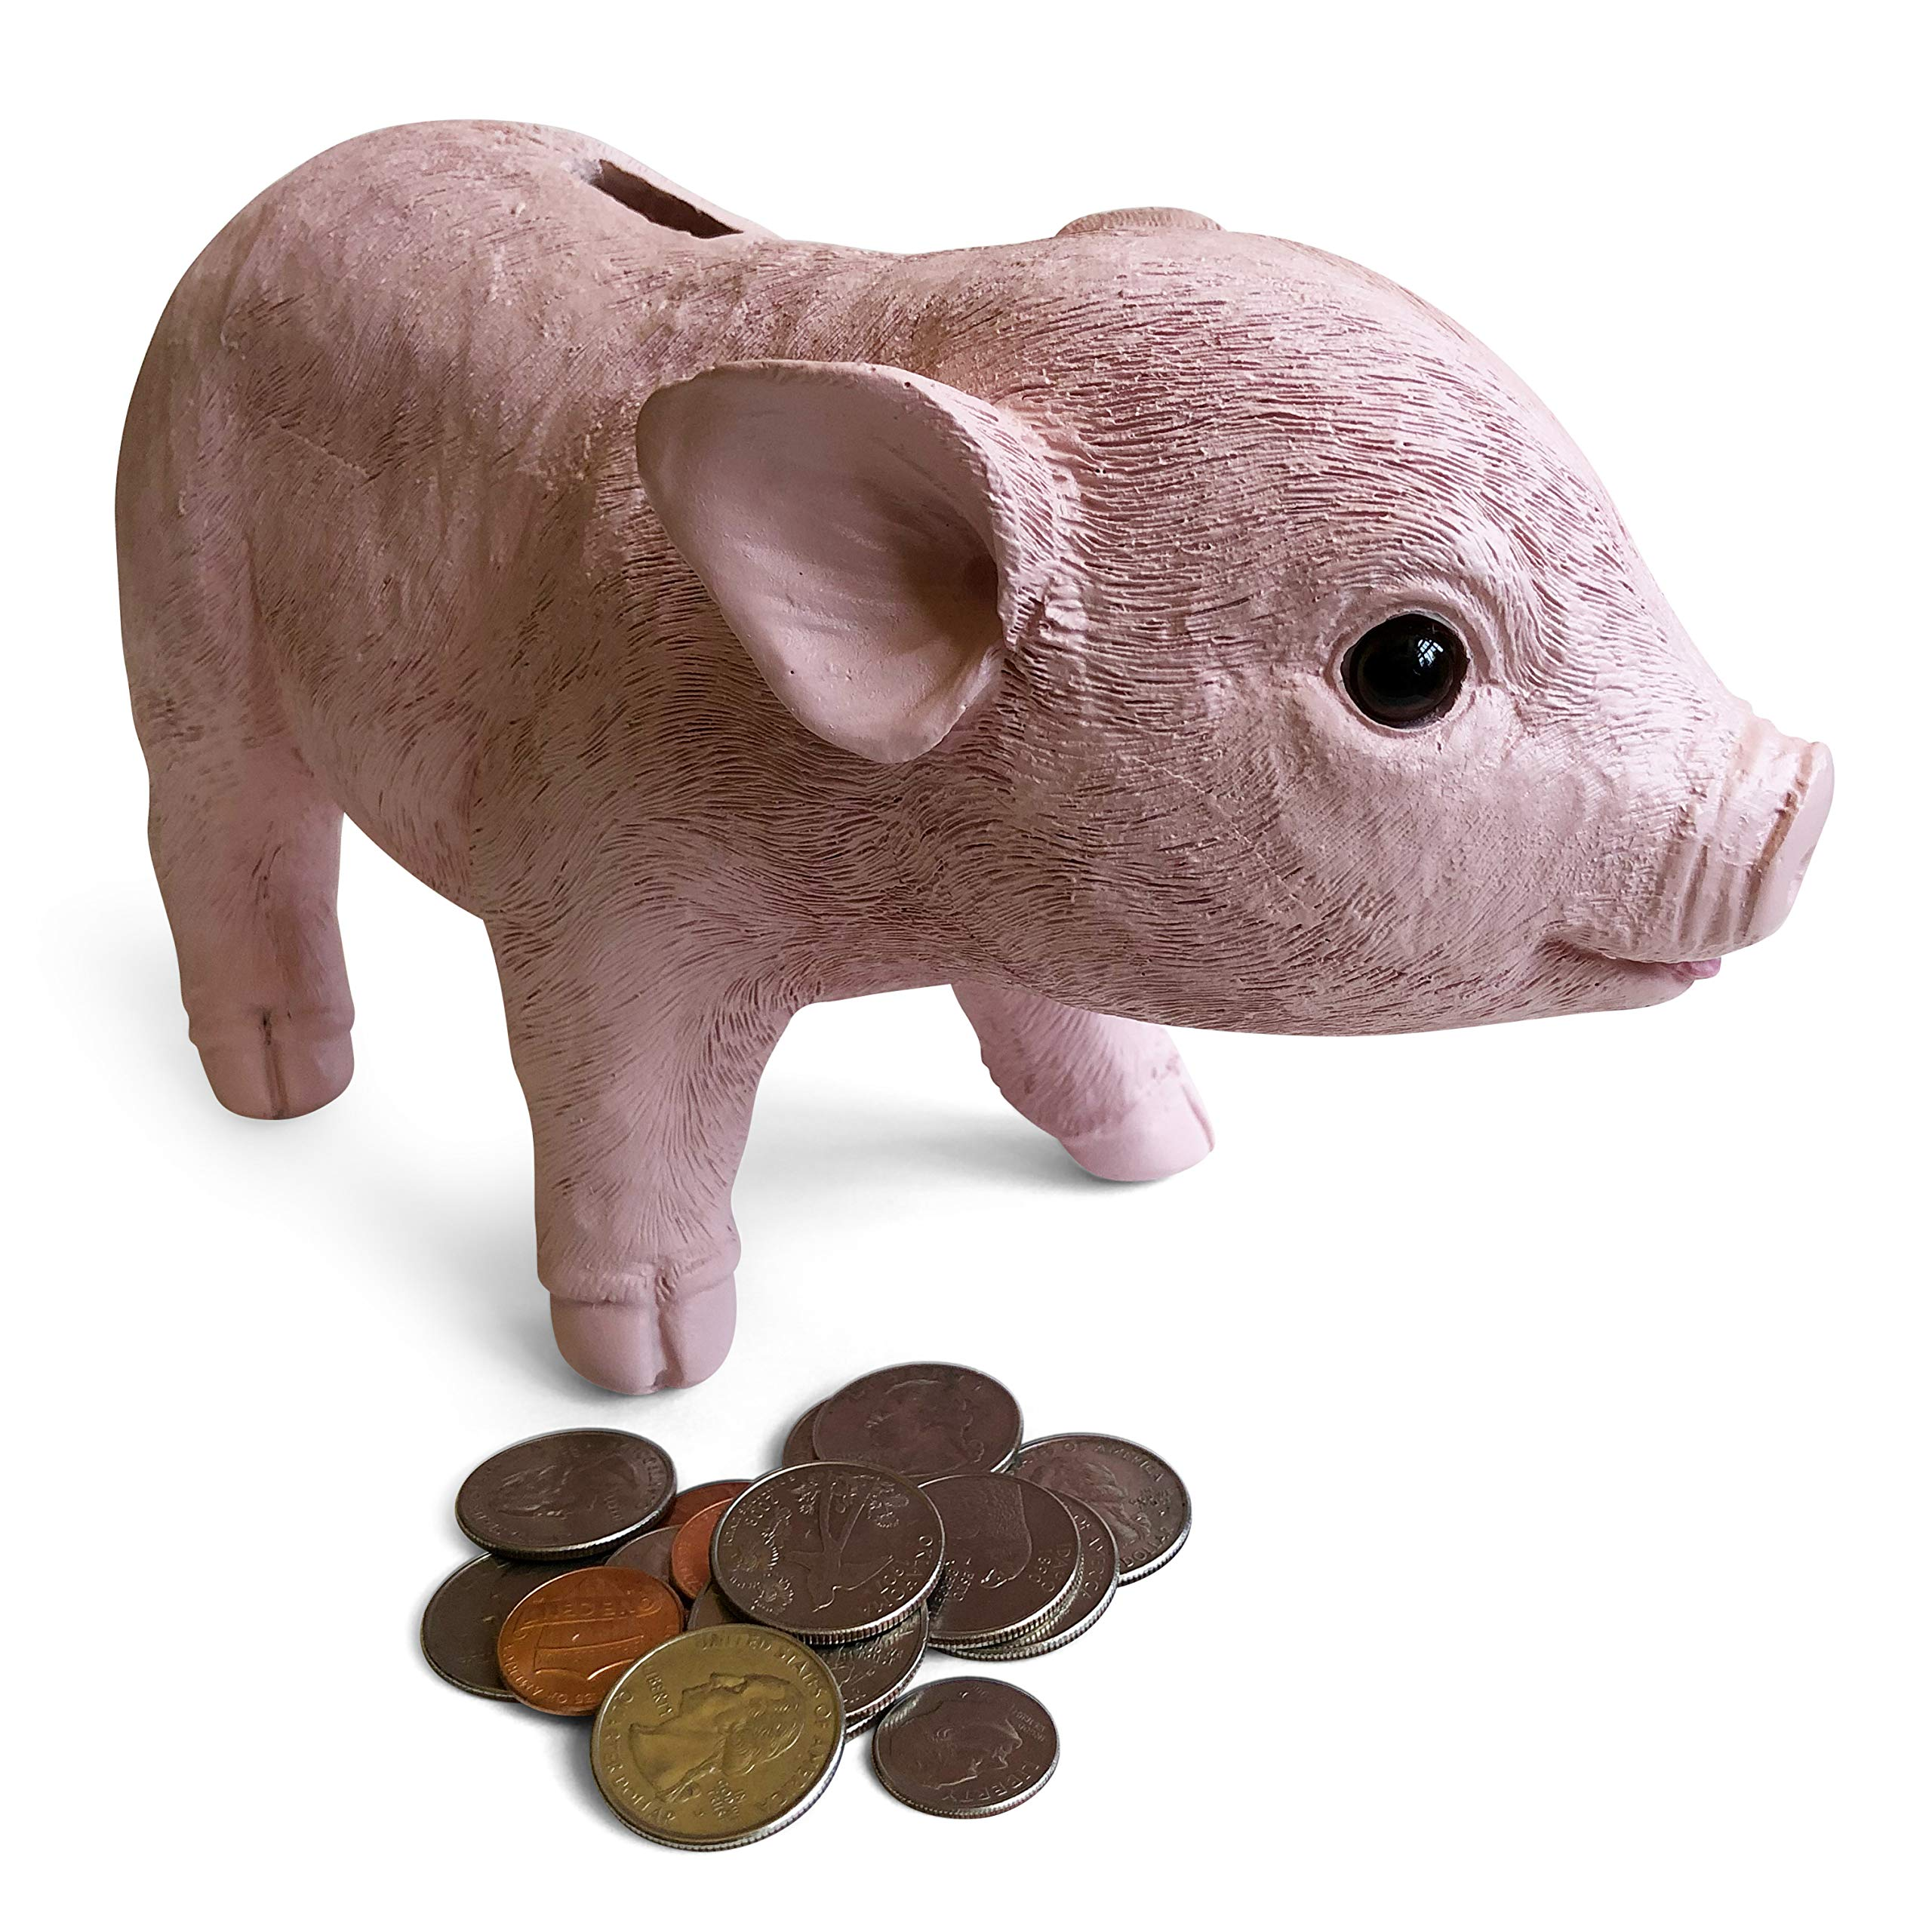 Kids Piggy Bank for Girls & Boys of all Ages - Lifelike Teacup Piglet Coin Bank is a fun and cute piggy bank for Adults too - Features gift ready packaging and wide slot for both coin and bills by Spark Toys & Games